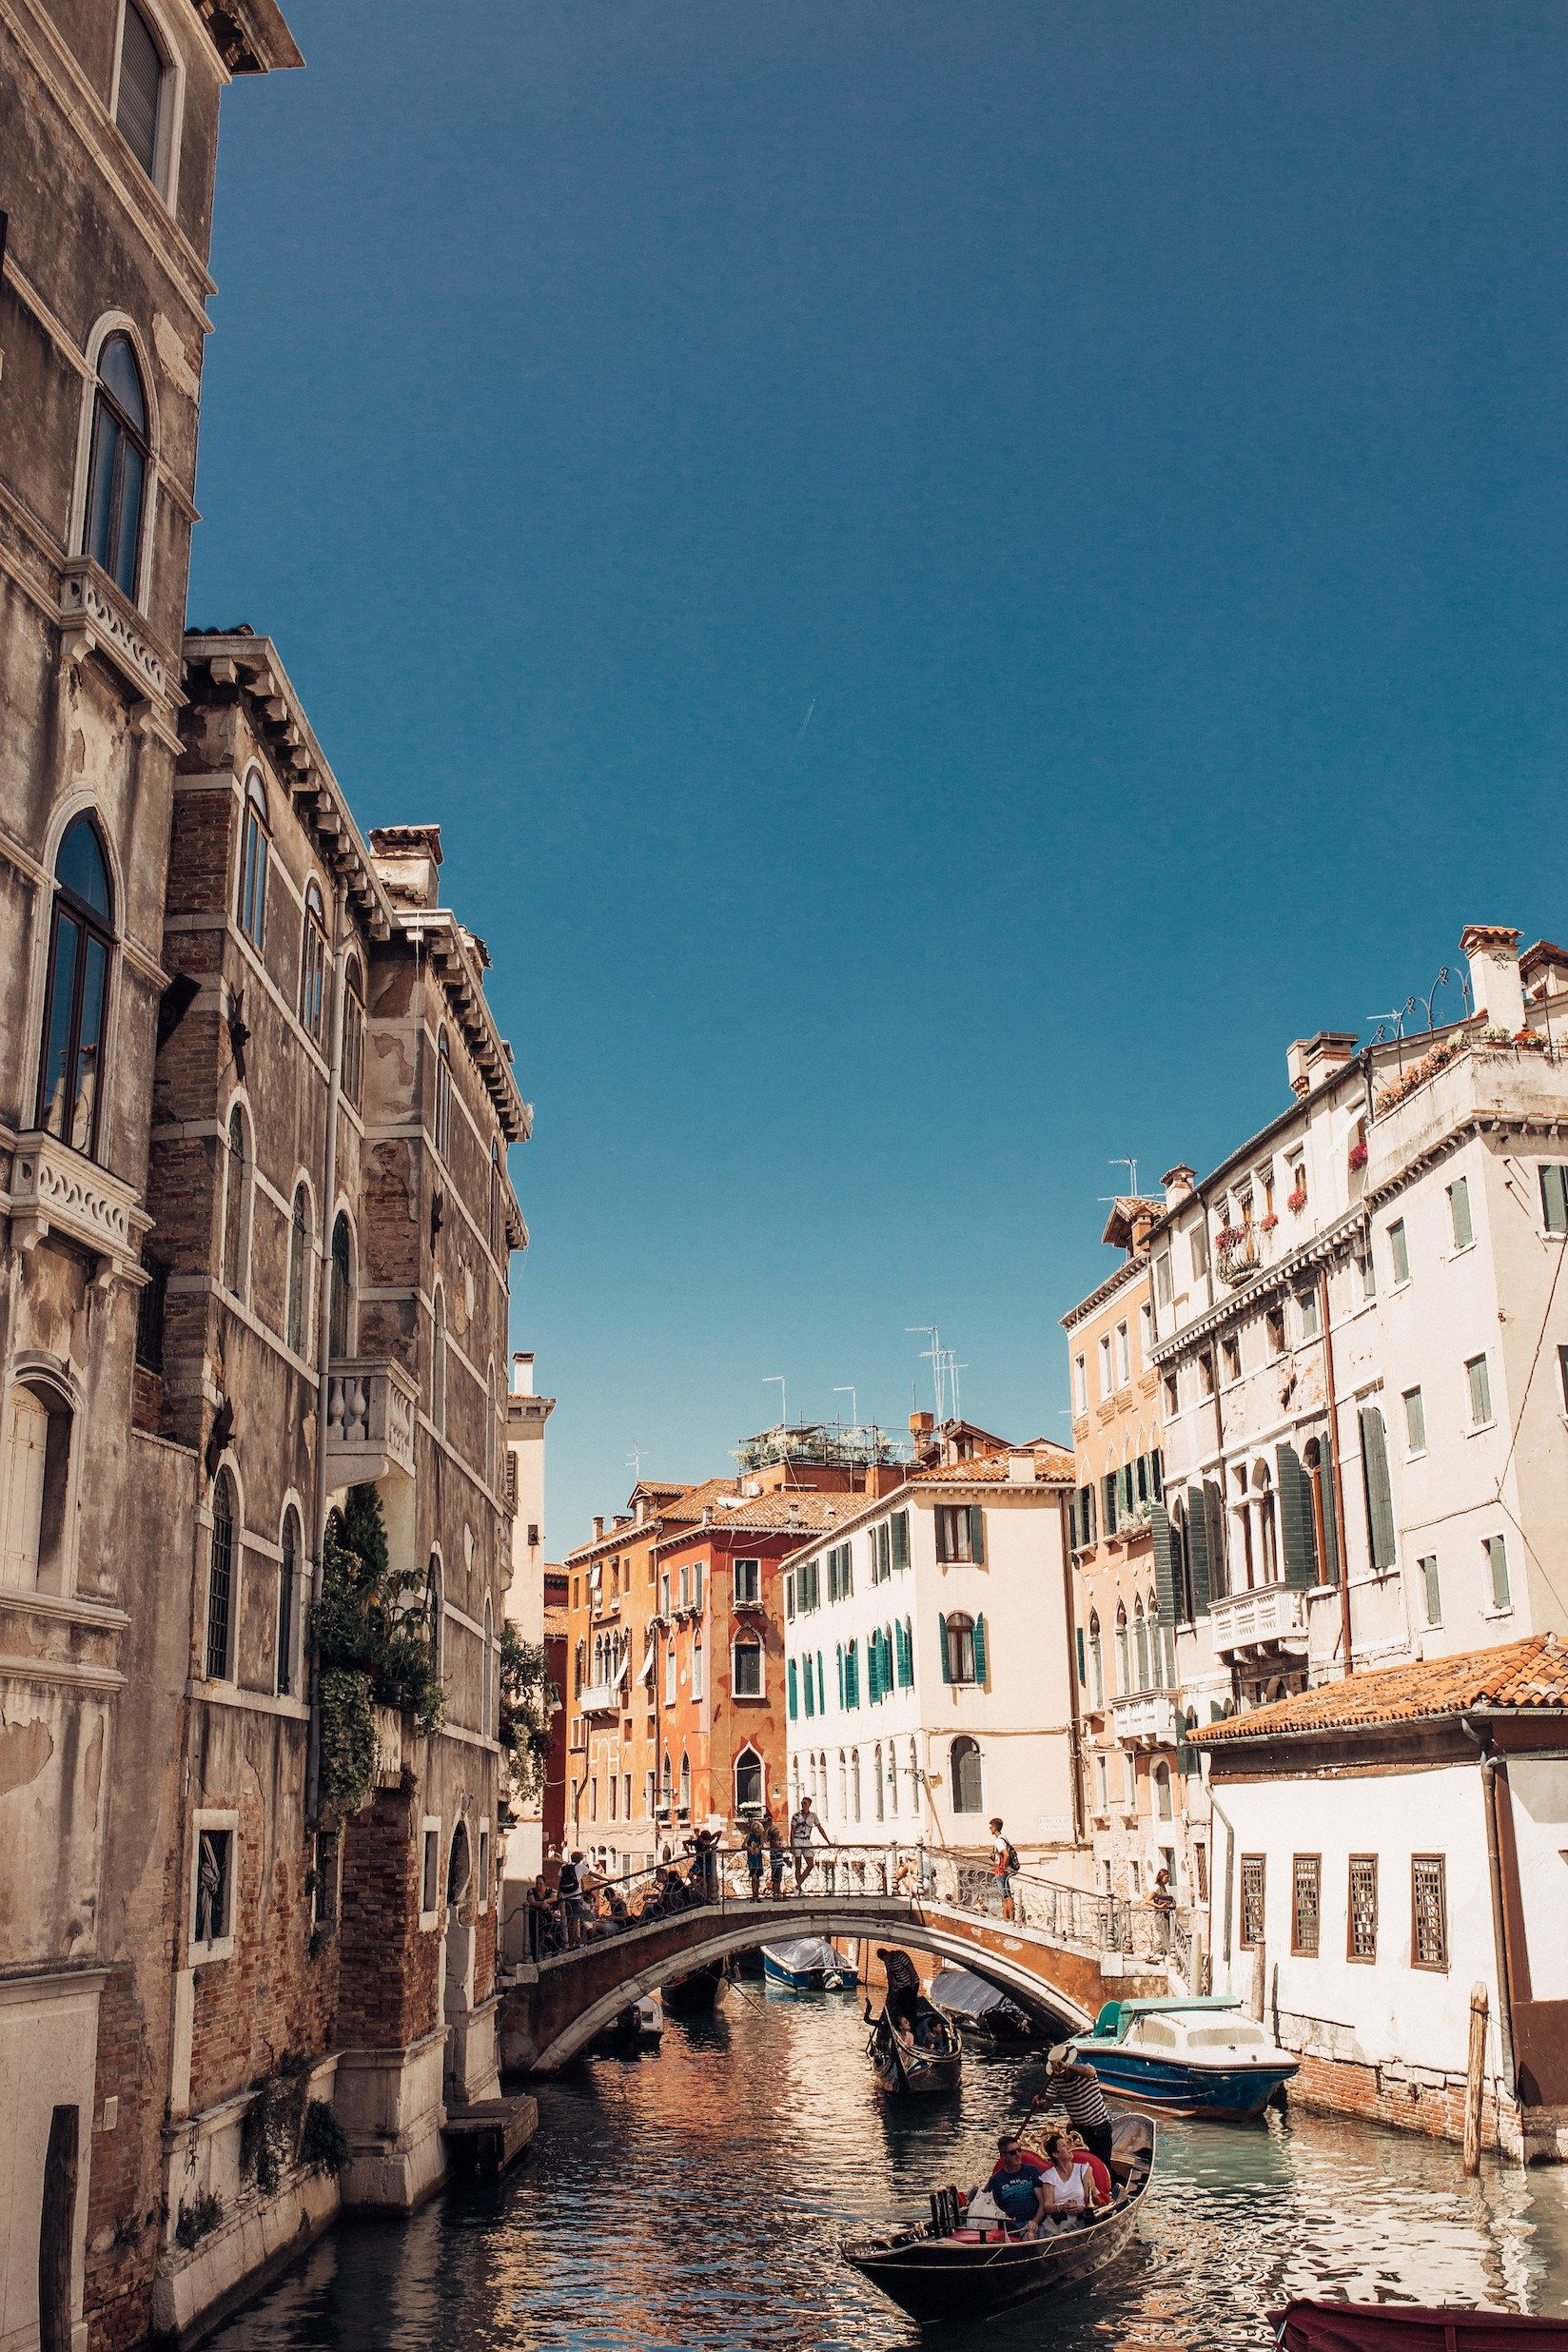 100 Photos to Inspire a Trip to Italy 🇮🇹✨ Sharing beautiful Italy photos on the blog, from sunrise at the Pantheon to gondola rides in Venice to gelato in Tuscany to the glamorous beaches of Positano. This Italy photography tour will inspire your next Italy travel destination. | Visit Italy | Europe Photography | Italy Aesthetic | #italy | Venice Italy